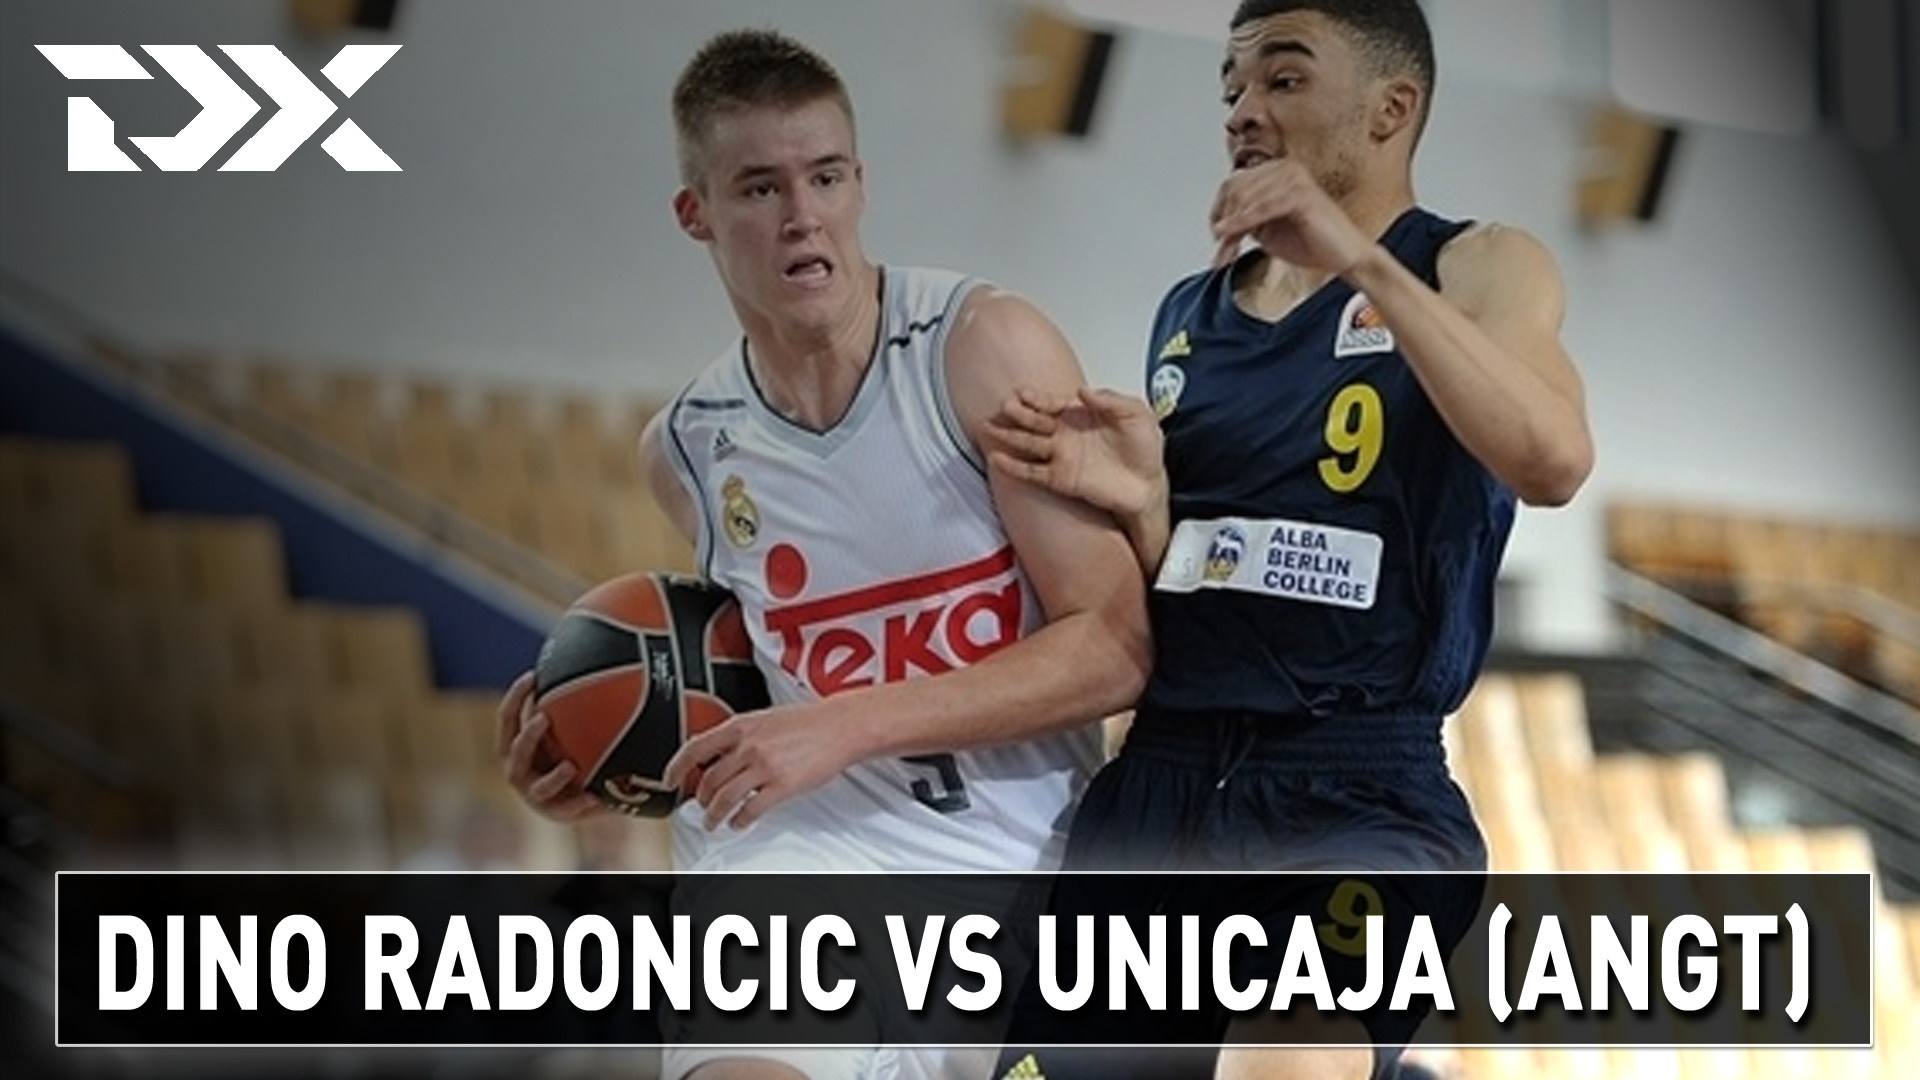 Dino Radoncic vs Unicaja Malaga U-18 - Matchup Video